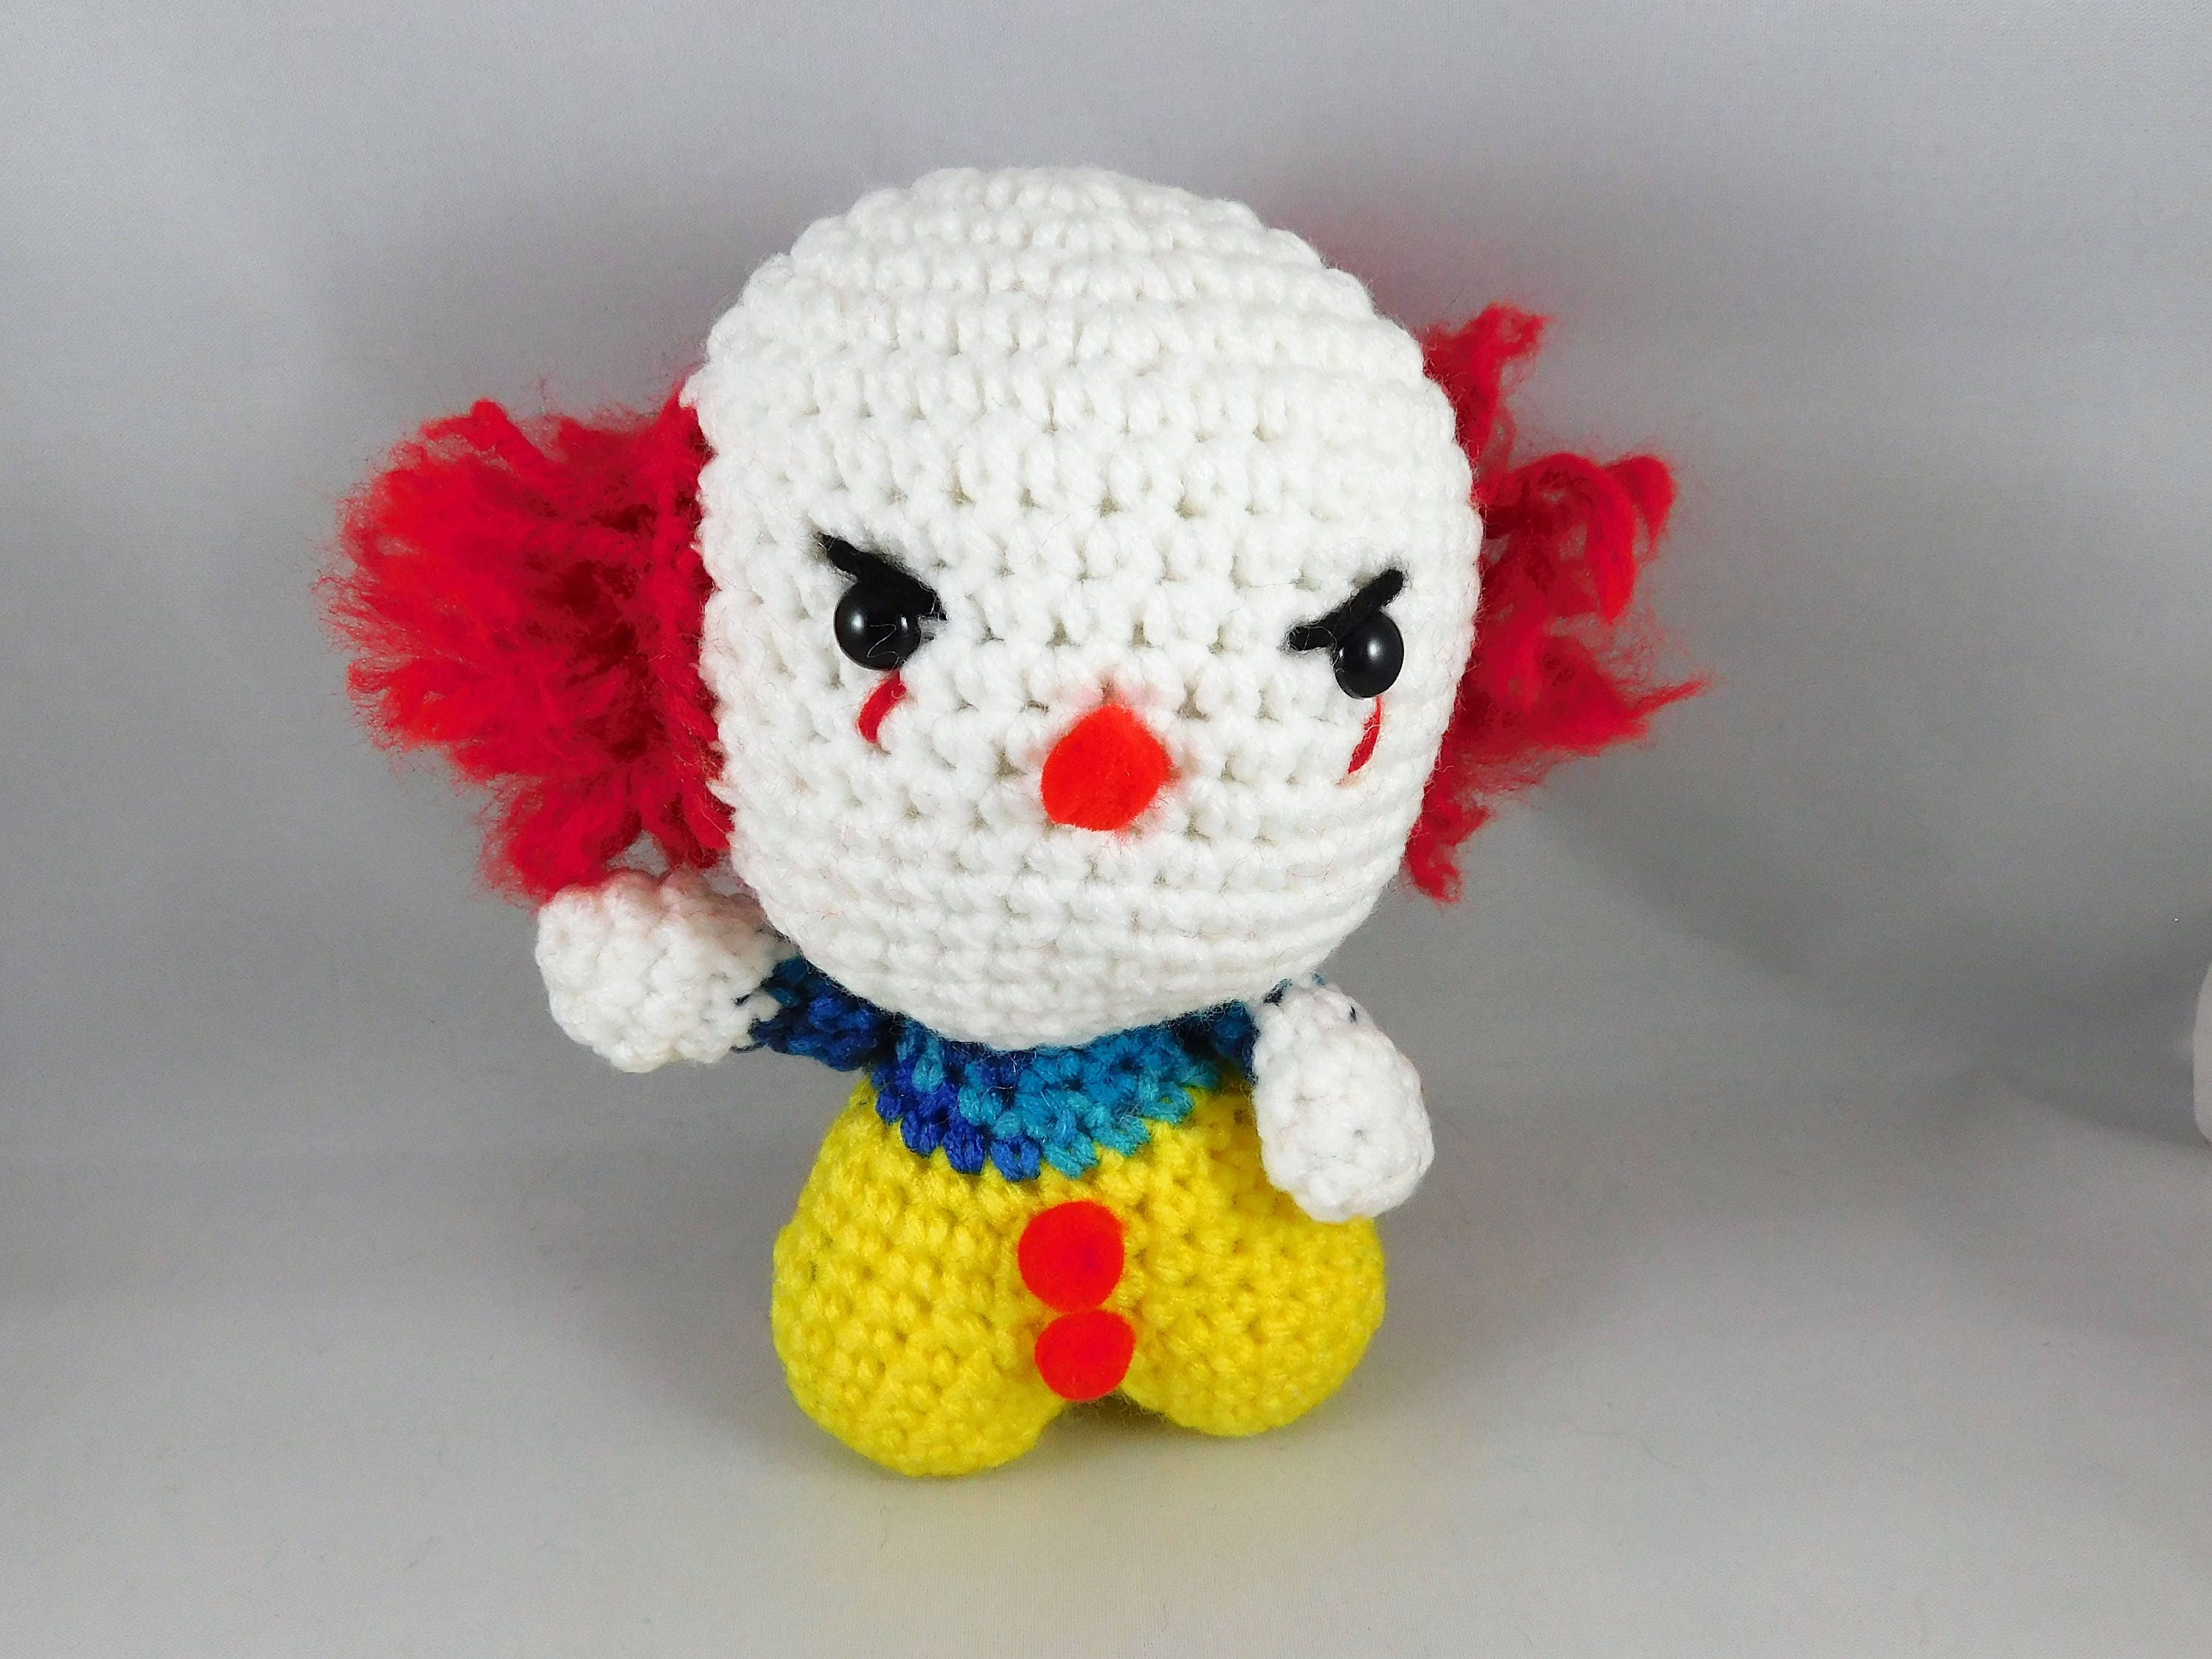 ES clown-Puppe Puppe Horror häkeln pennywise Scary Clown